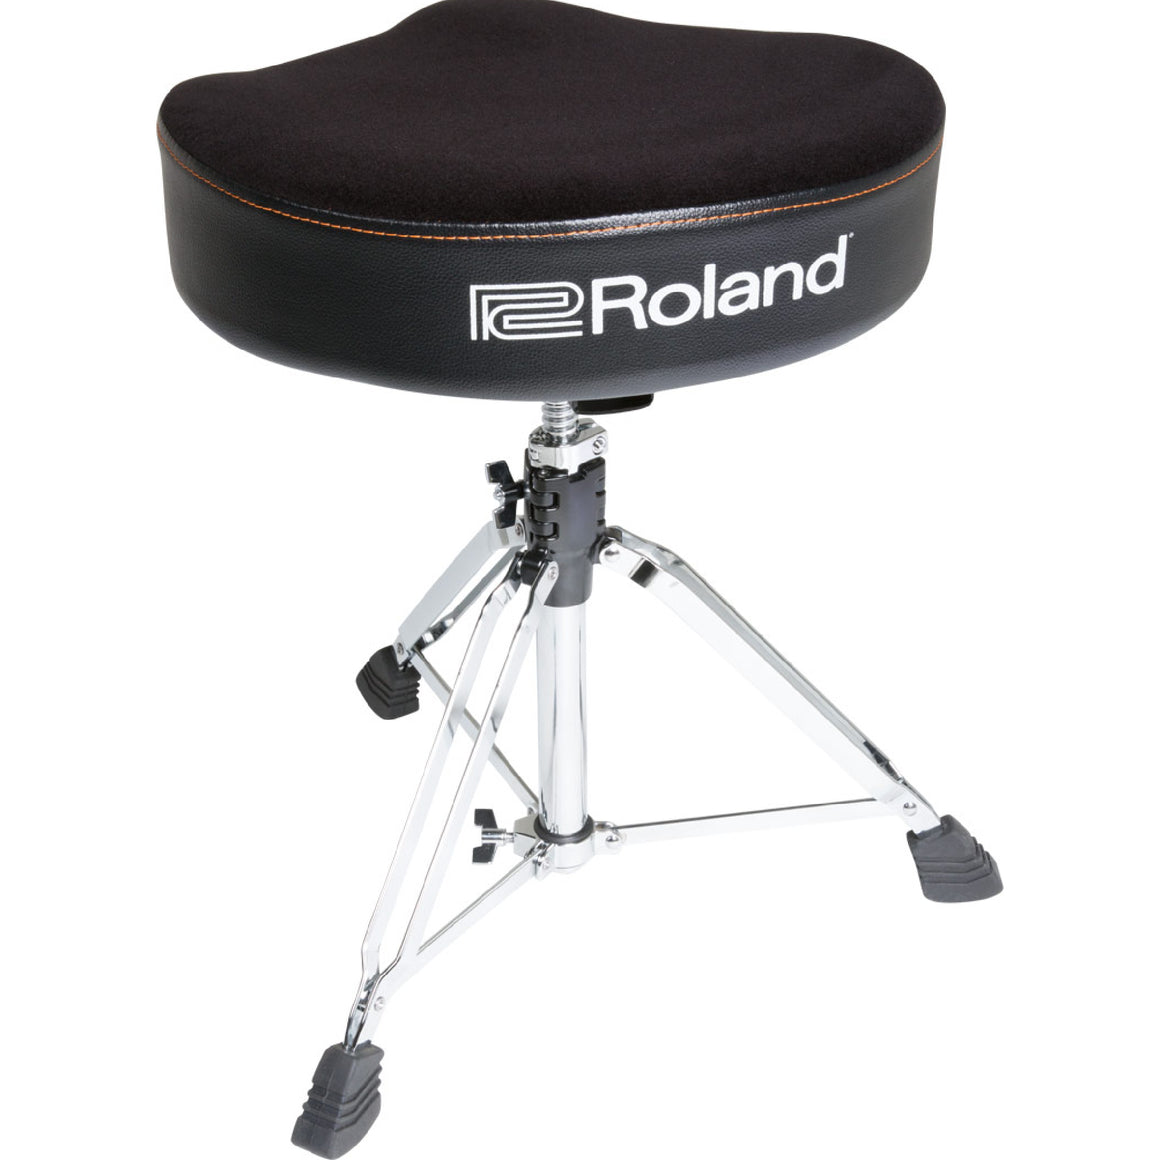 Roland RDT-S Saddle Drum Throne